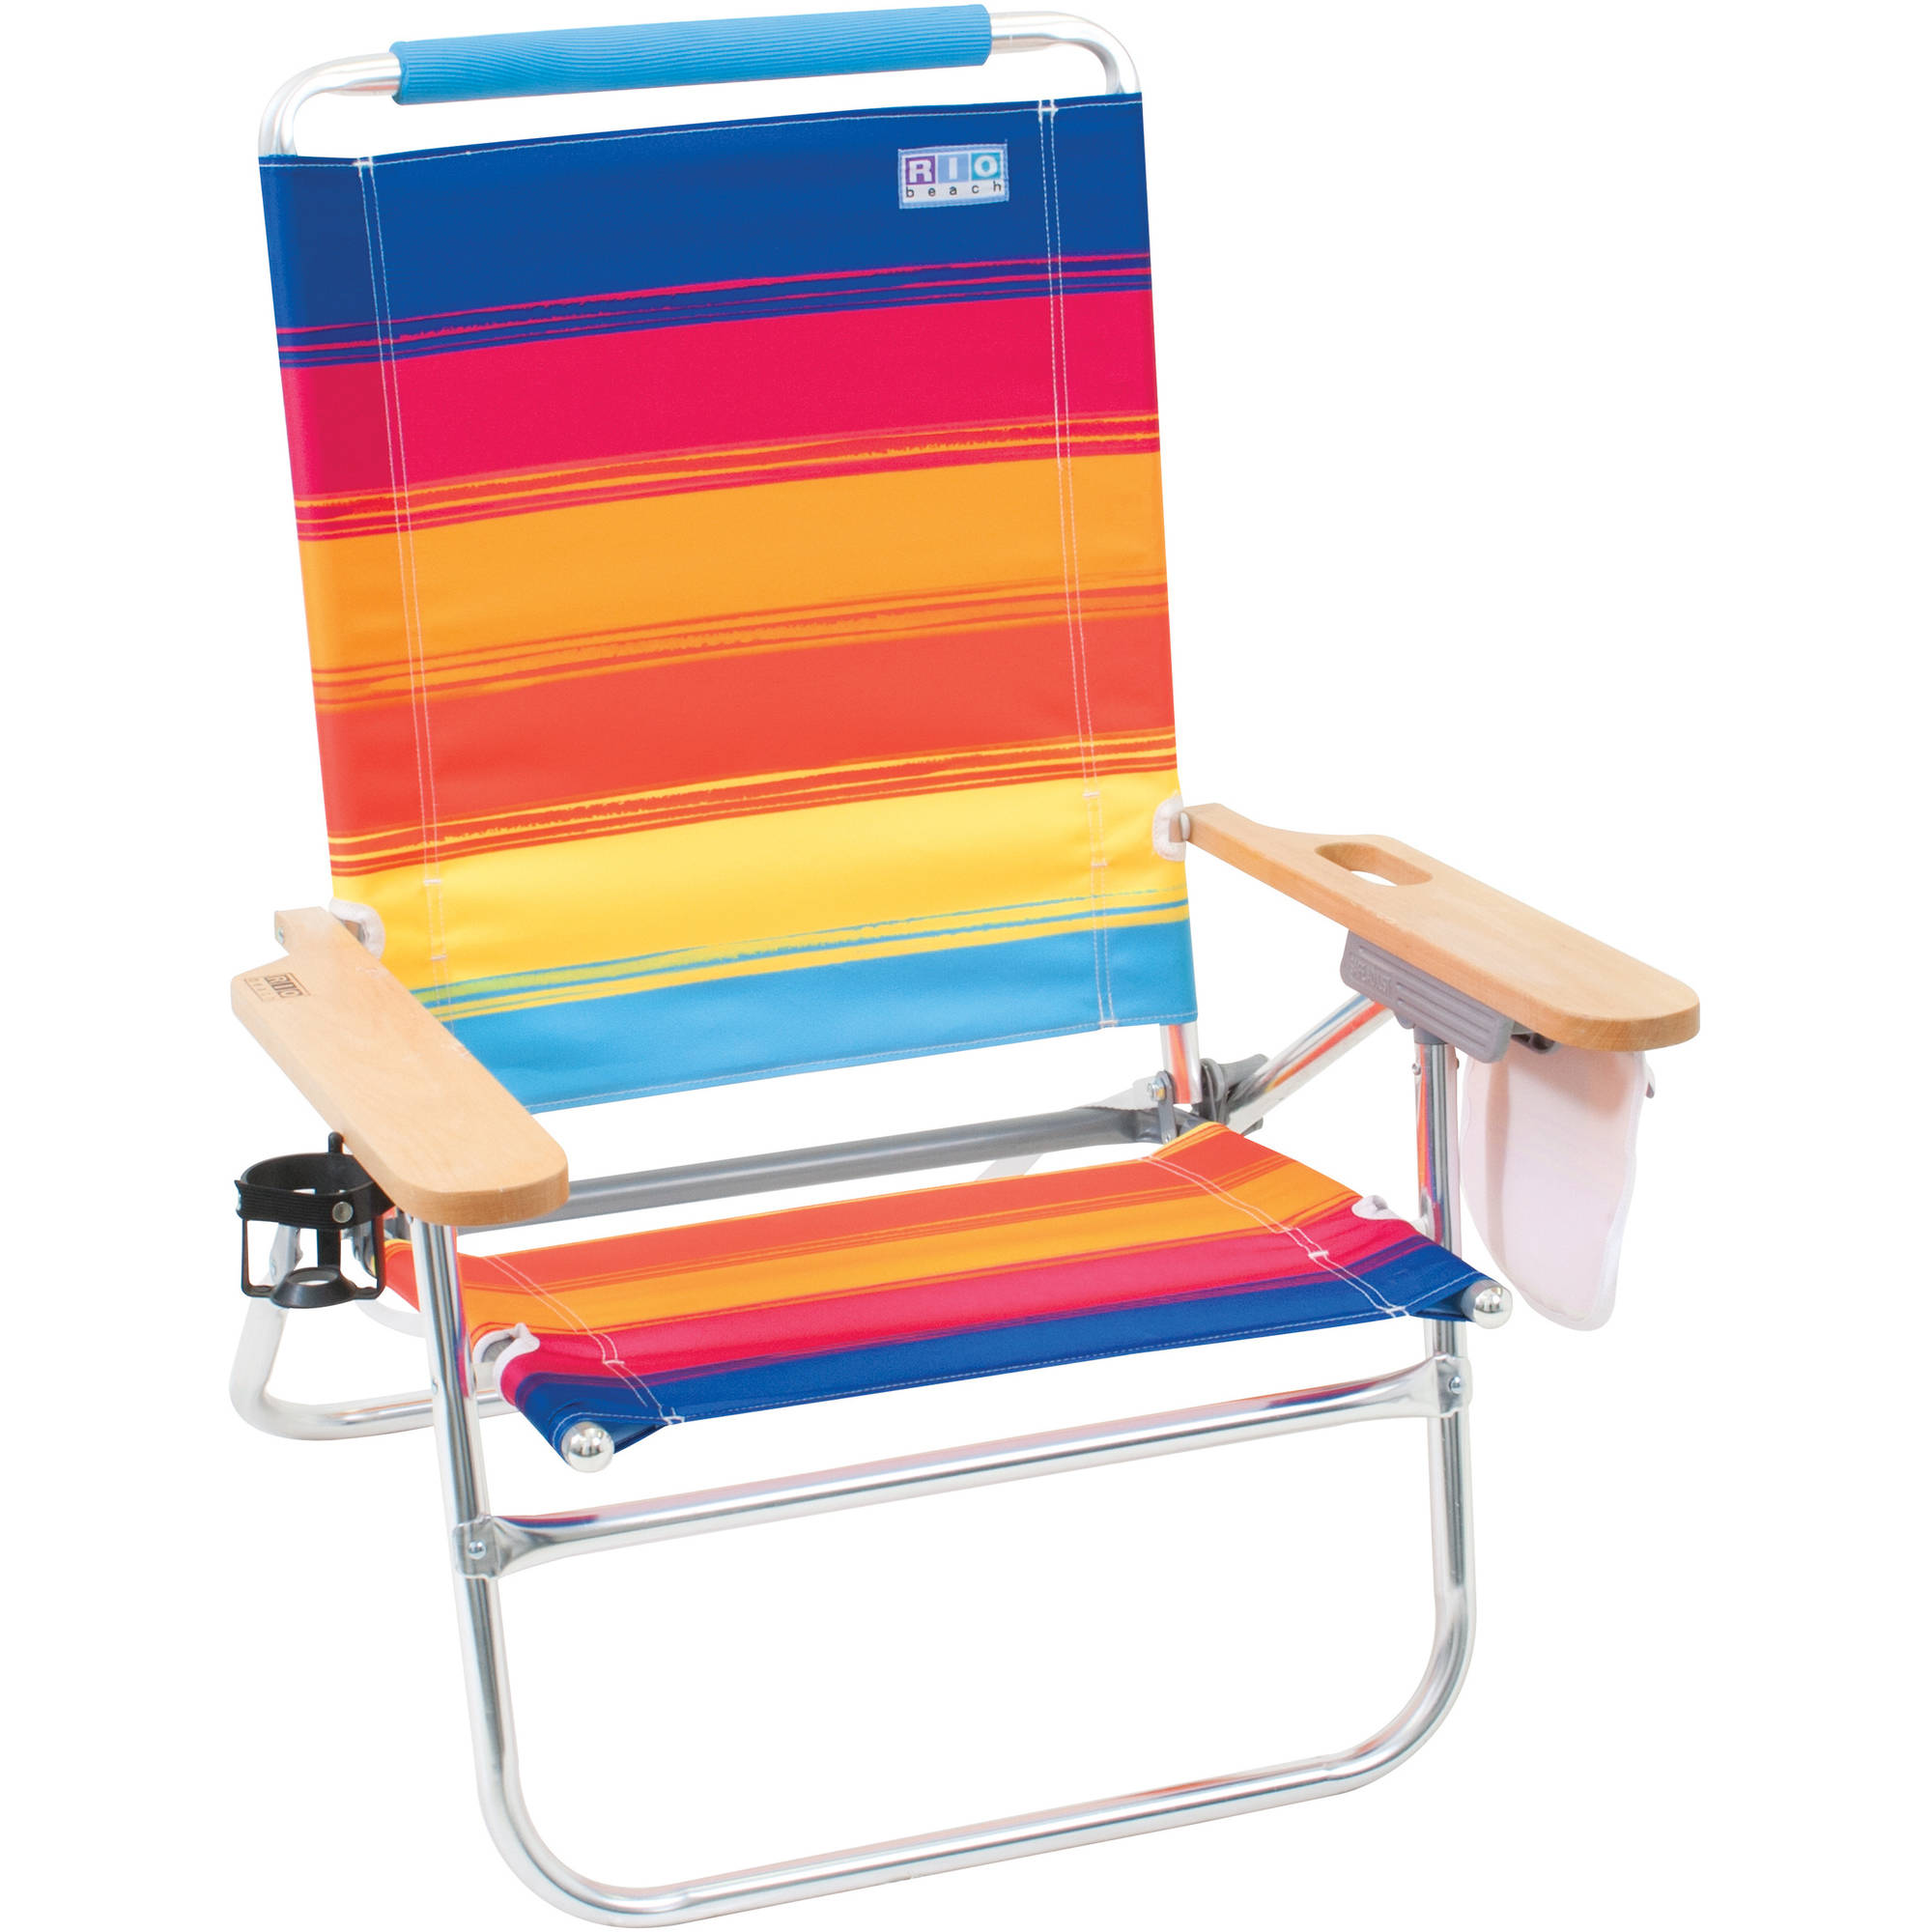 noimagefound chair with sporting s premium cooler is p backpack chairs goods beach rio dick blue